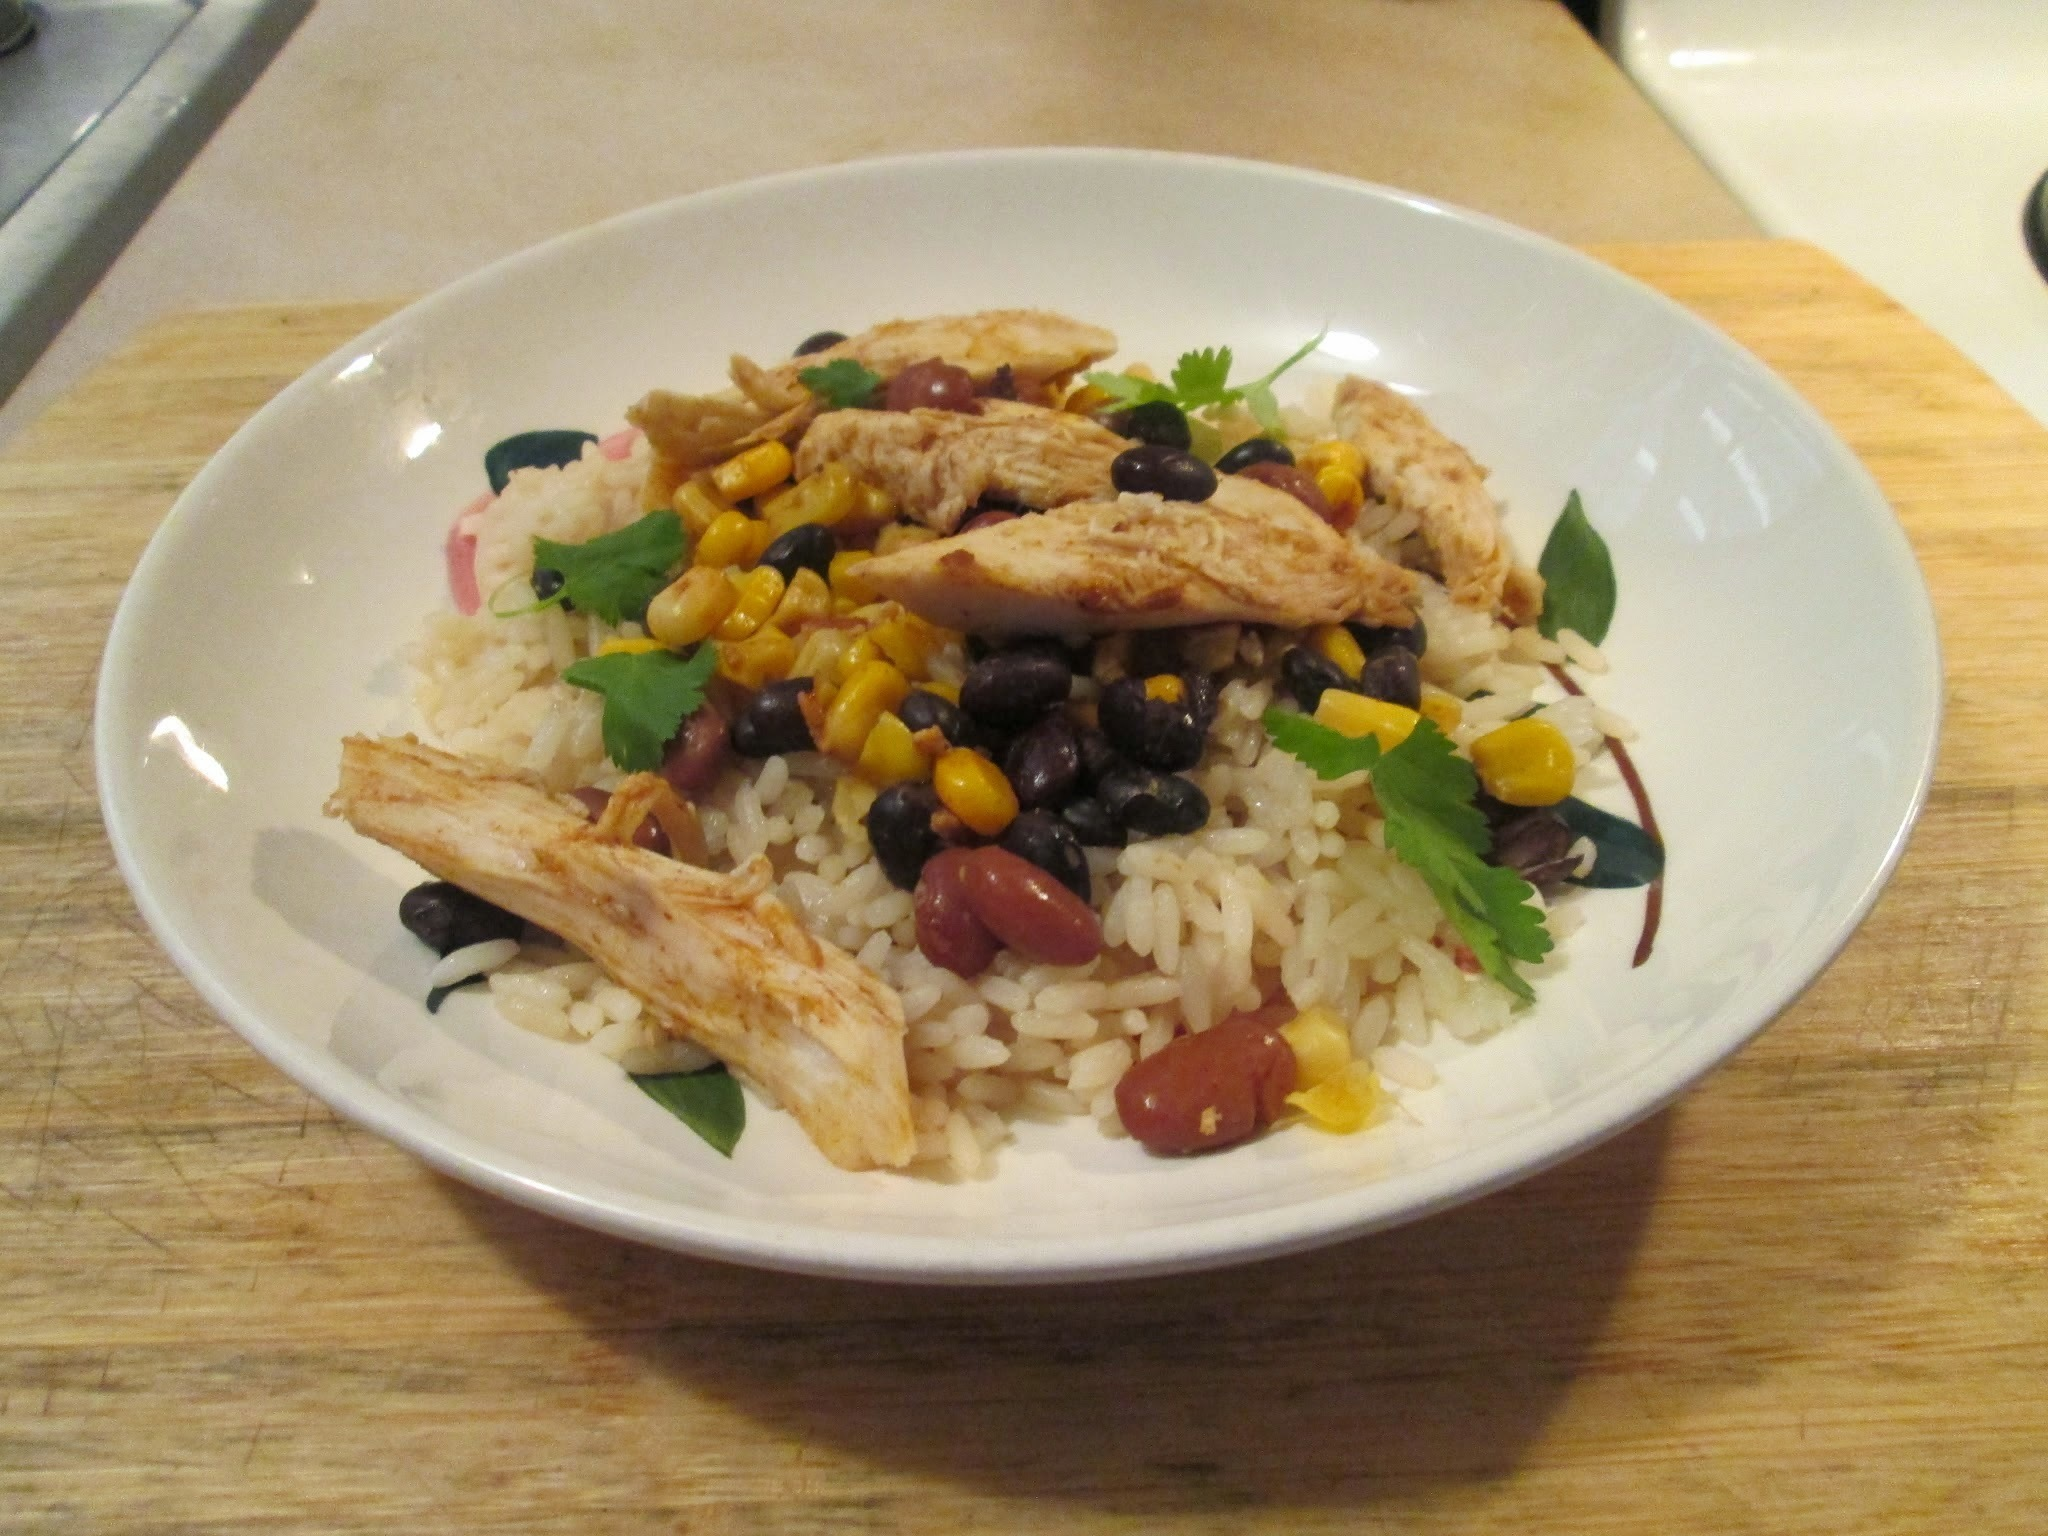 Leftovers Bush's One Pot Chicken, Rice & Beans